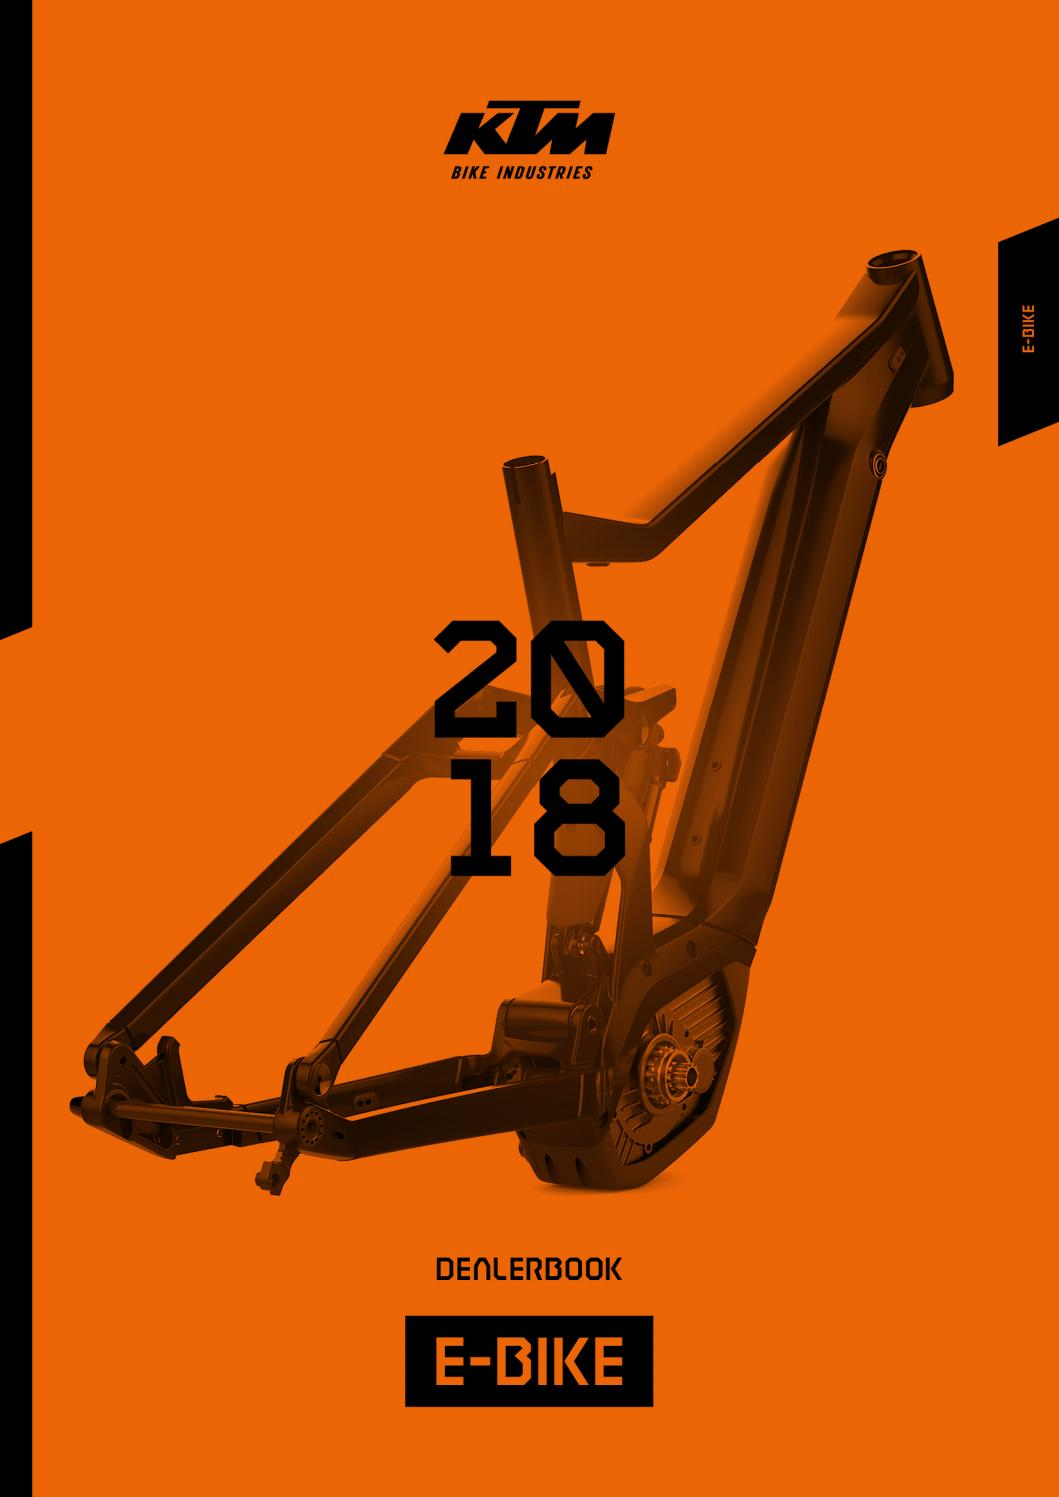 Ktm E Bike Dealerbook 2018 By Ktm Bike Industries Issuu